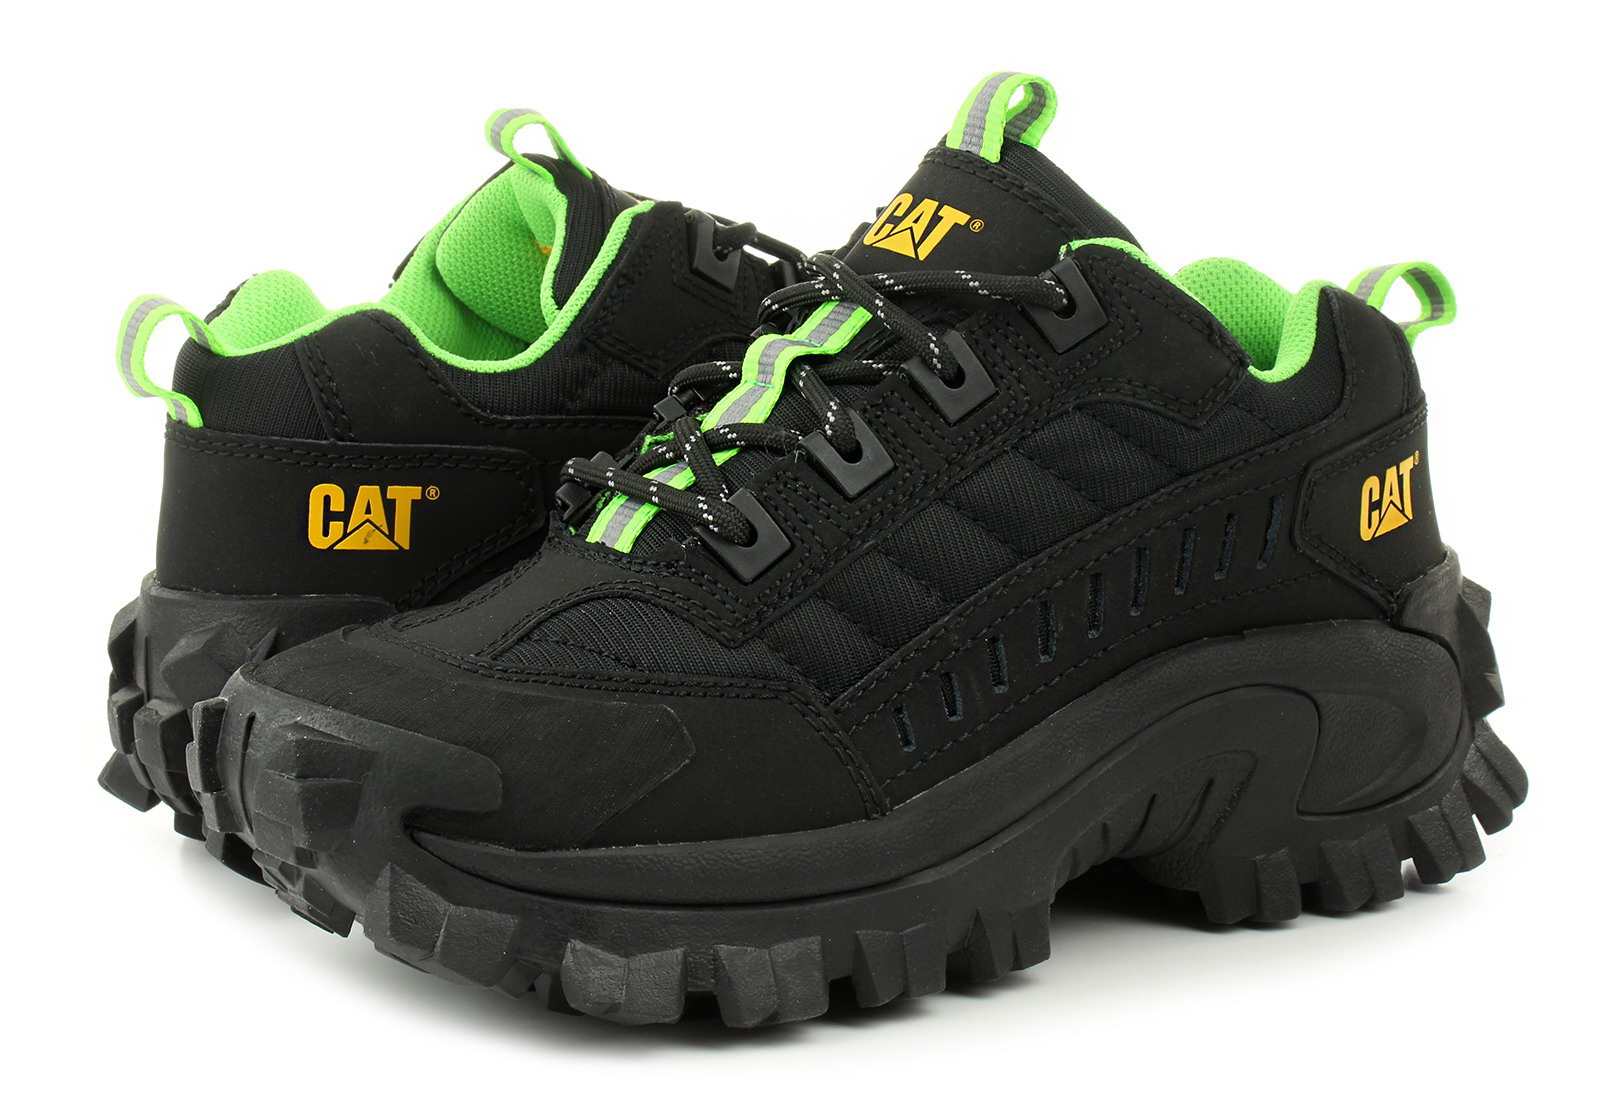 d52b1175bffc9 Cat Shoes - Intruder - 723312-blk - Online shop for sneakers, shoes ...